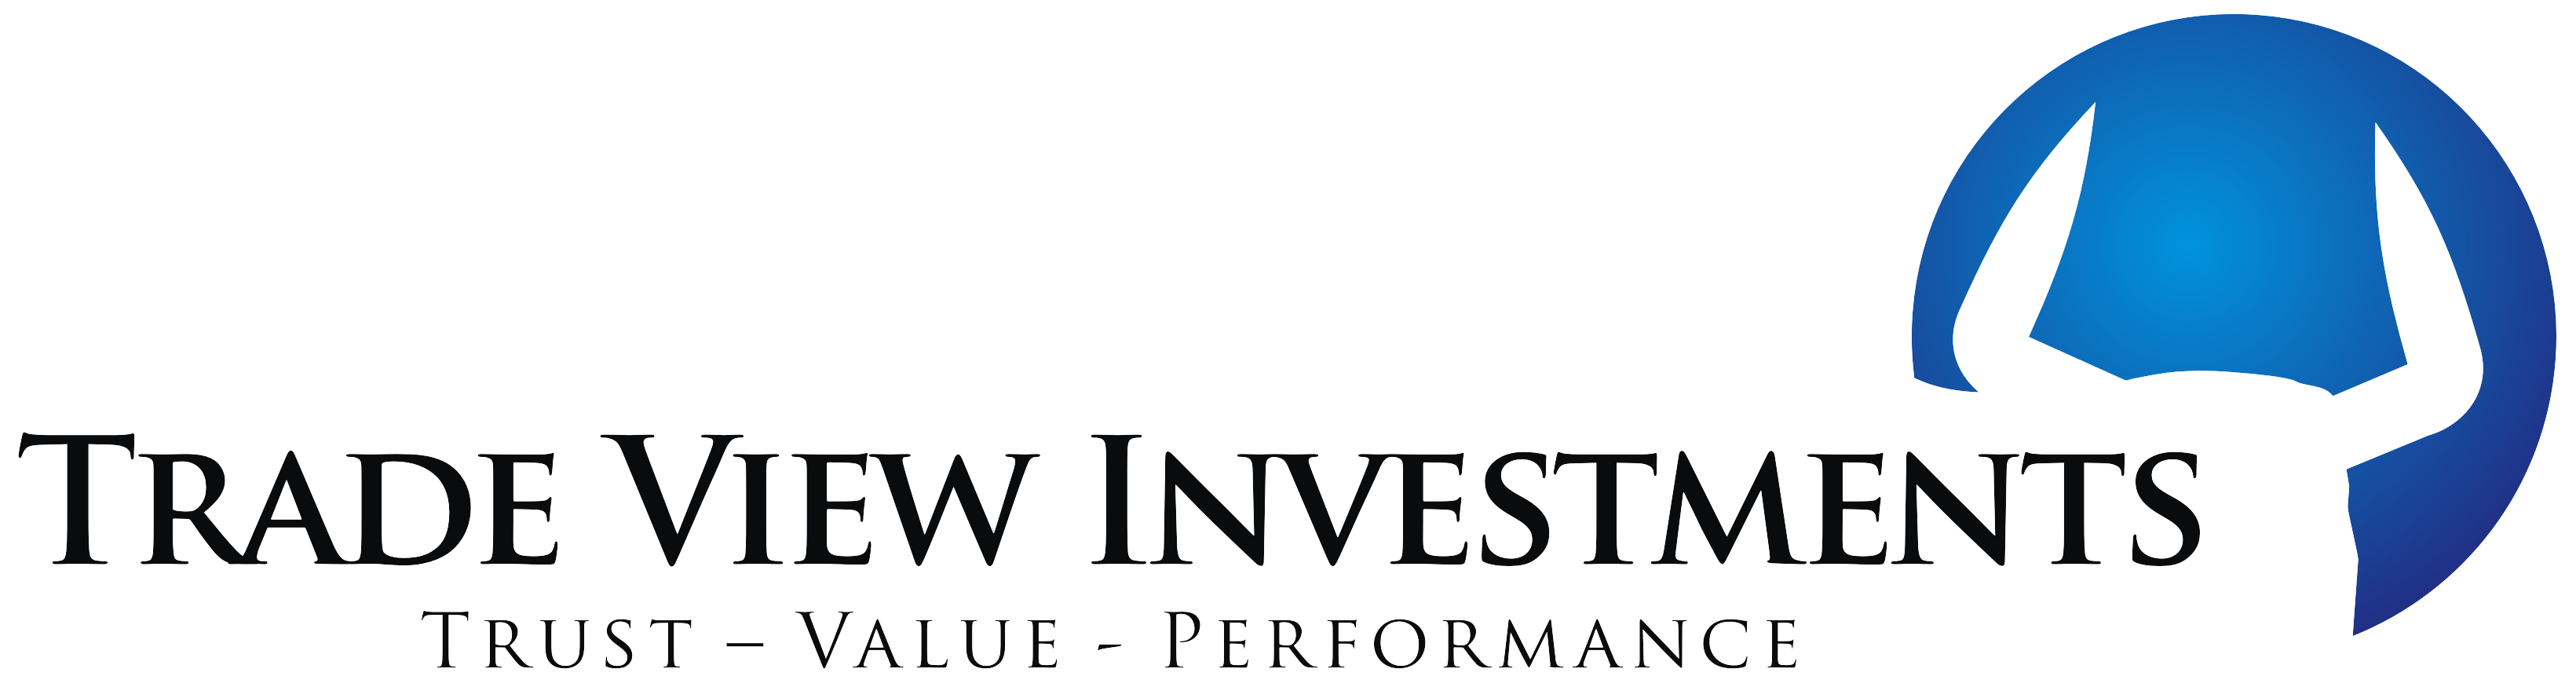 Trade View Investments